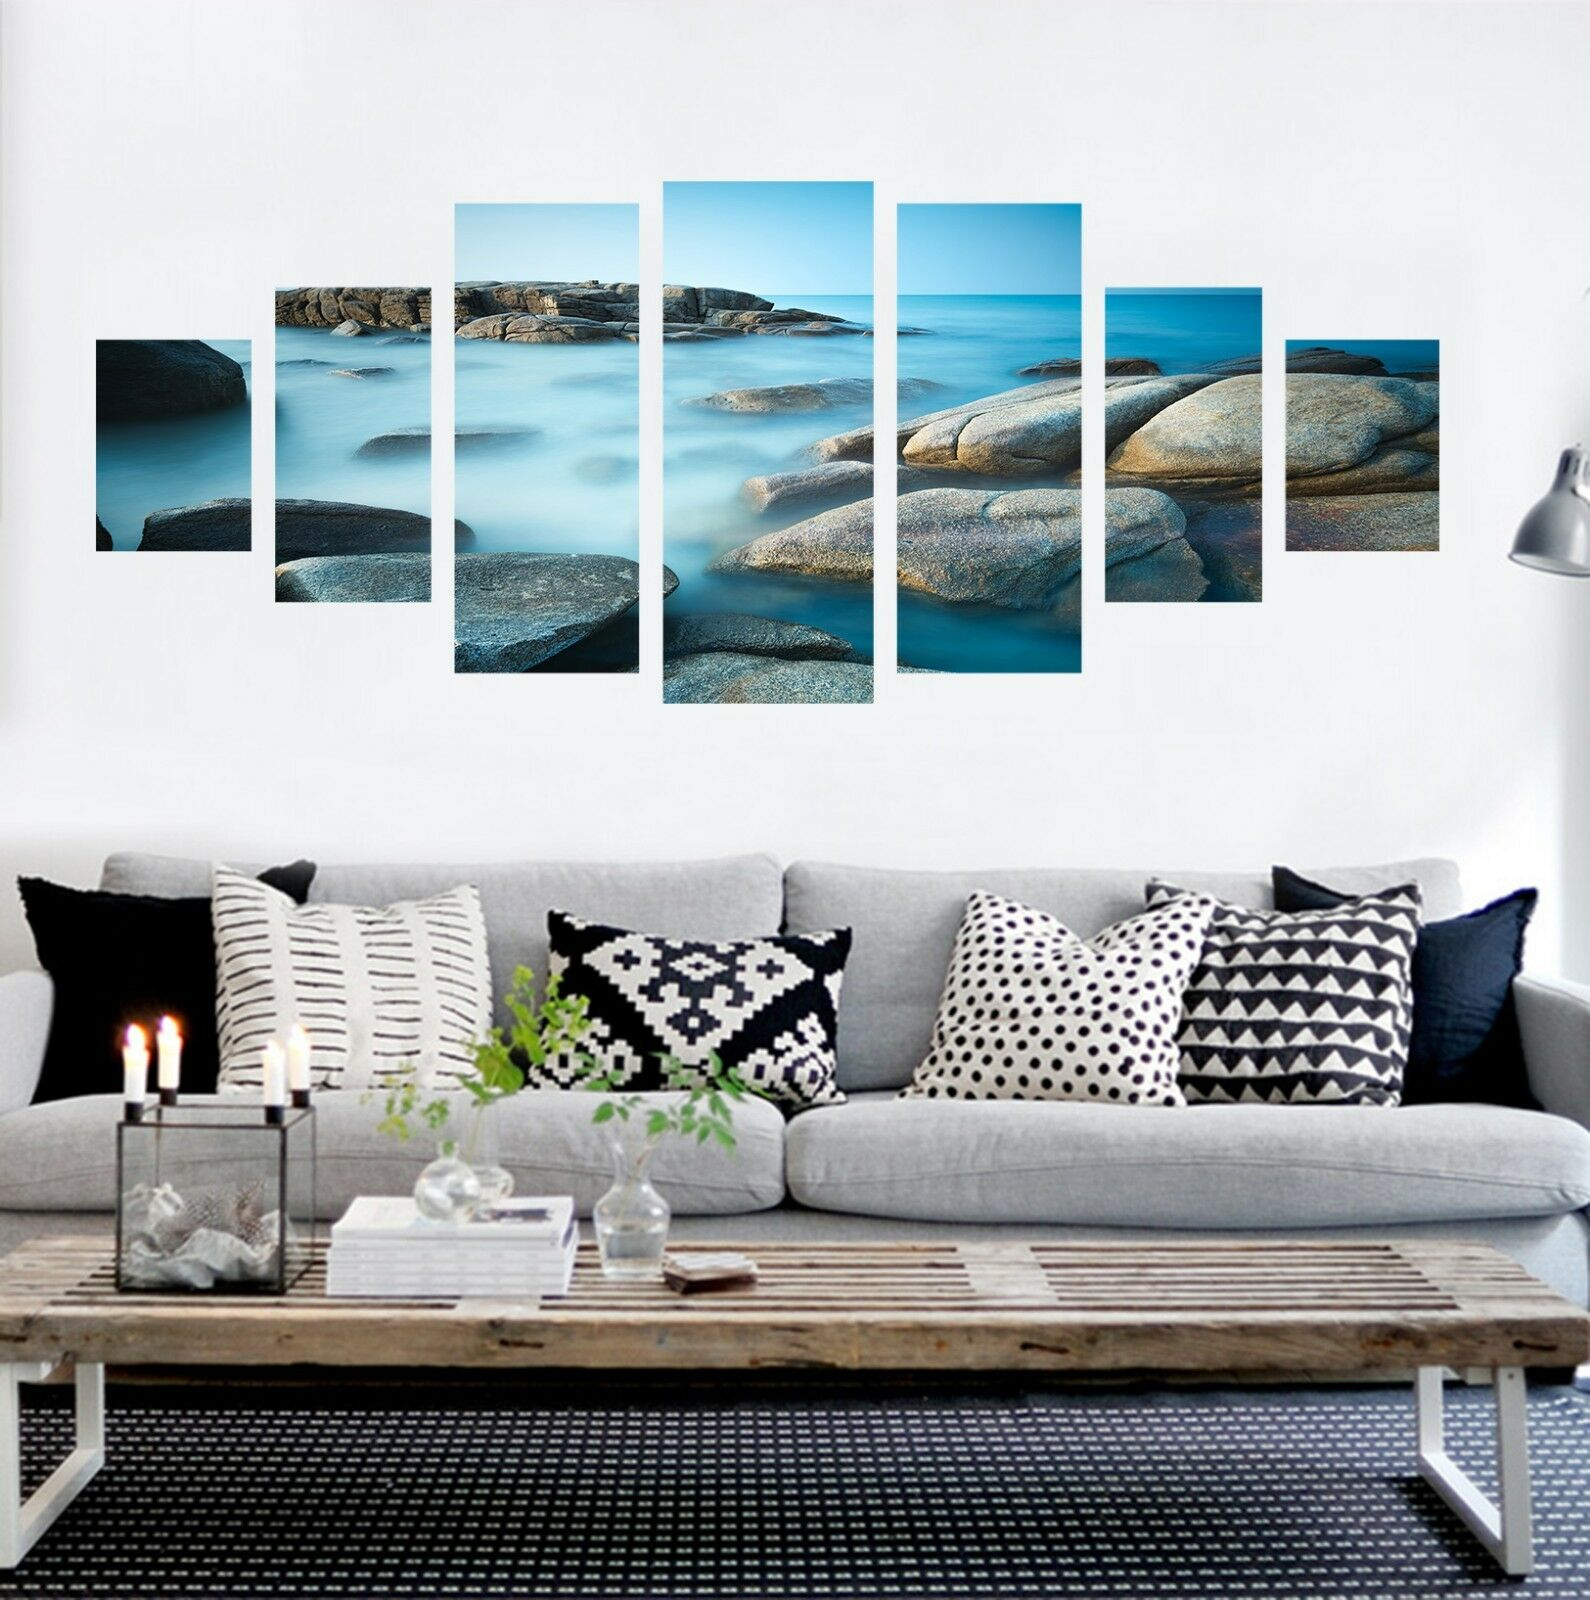 3D Stone River 76 Unframed Print Wall Paper Decal Wall Deco Indoor AJ Jenny